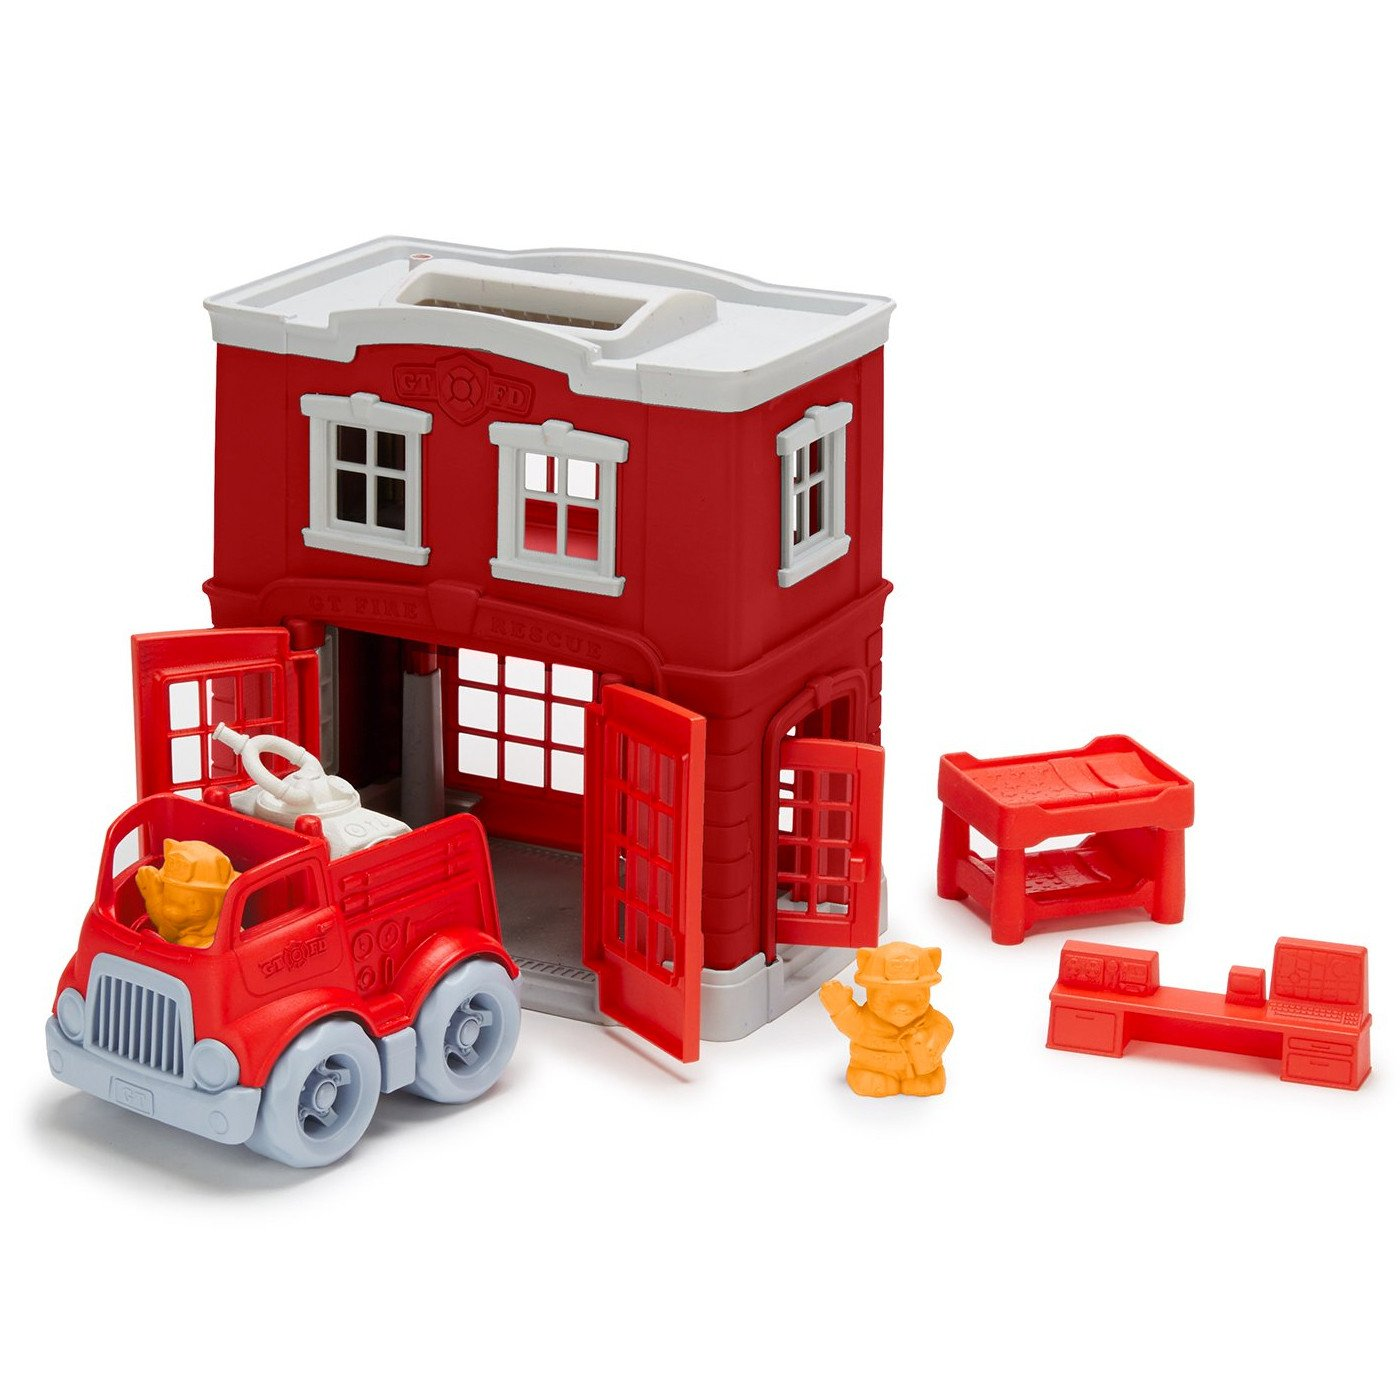 Green Toys Fire Station Play Set Green Toys Activity Toys Fire Station at Little Earth Nest Eco Shop